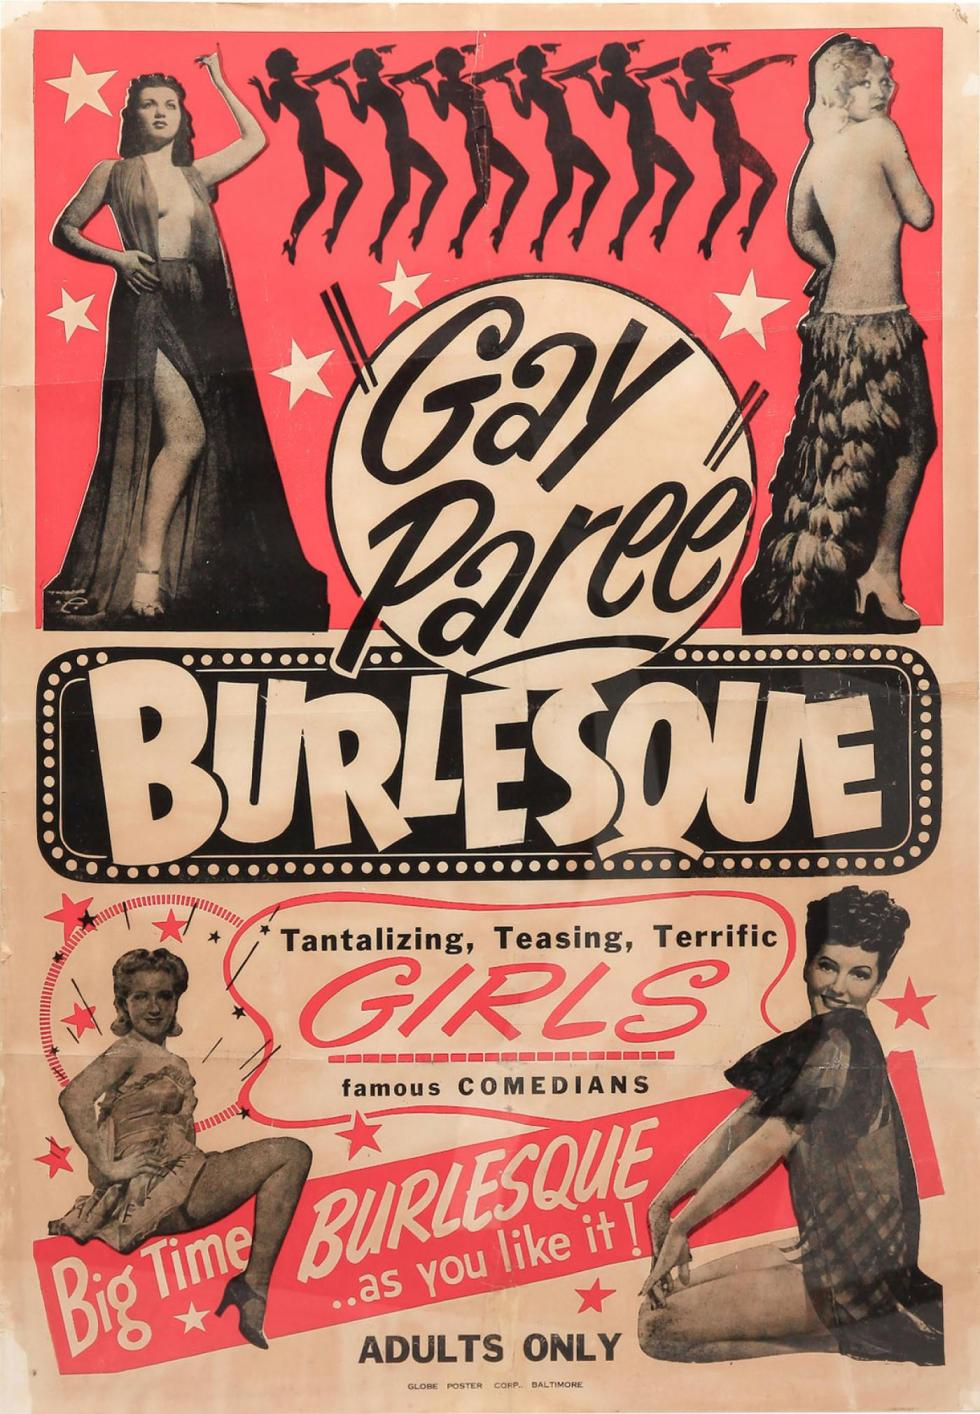 1940s Striptease 'Gay-Paree' burlesque framed poster